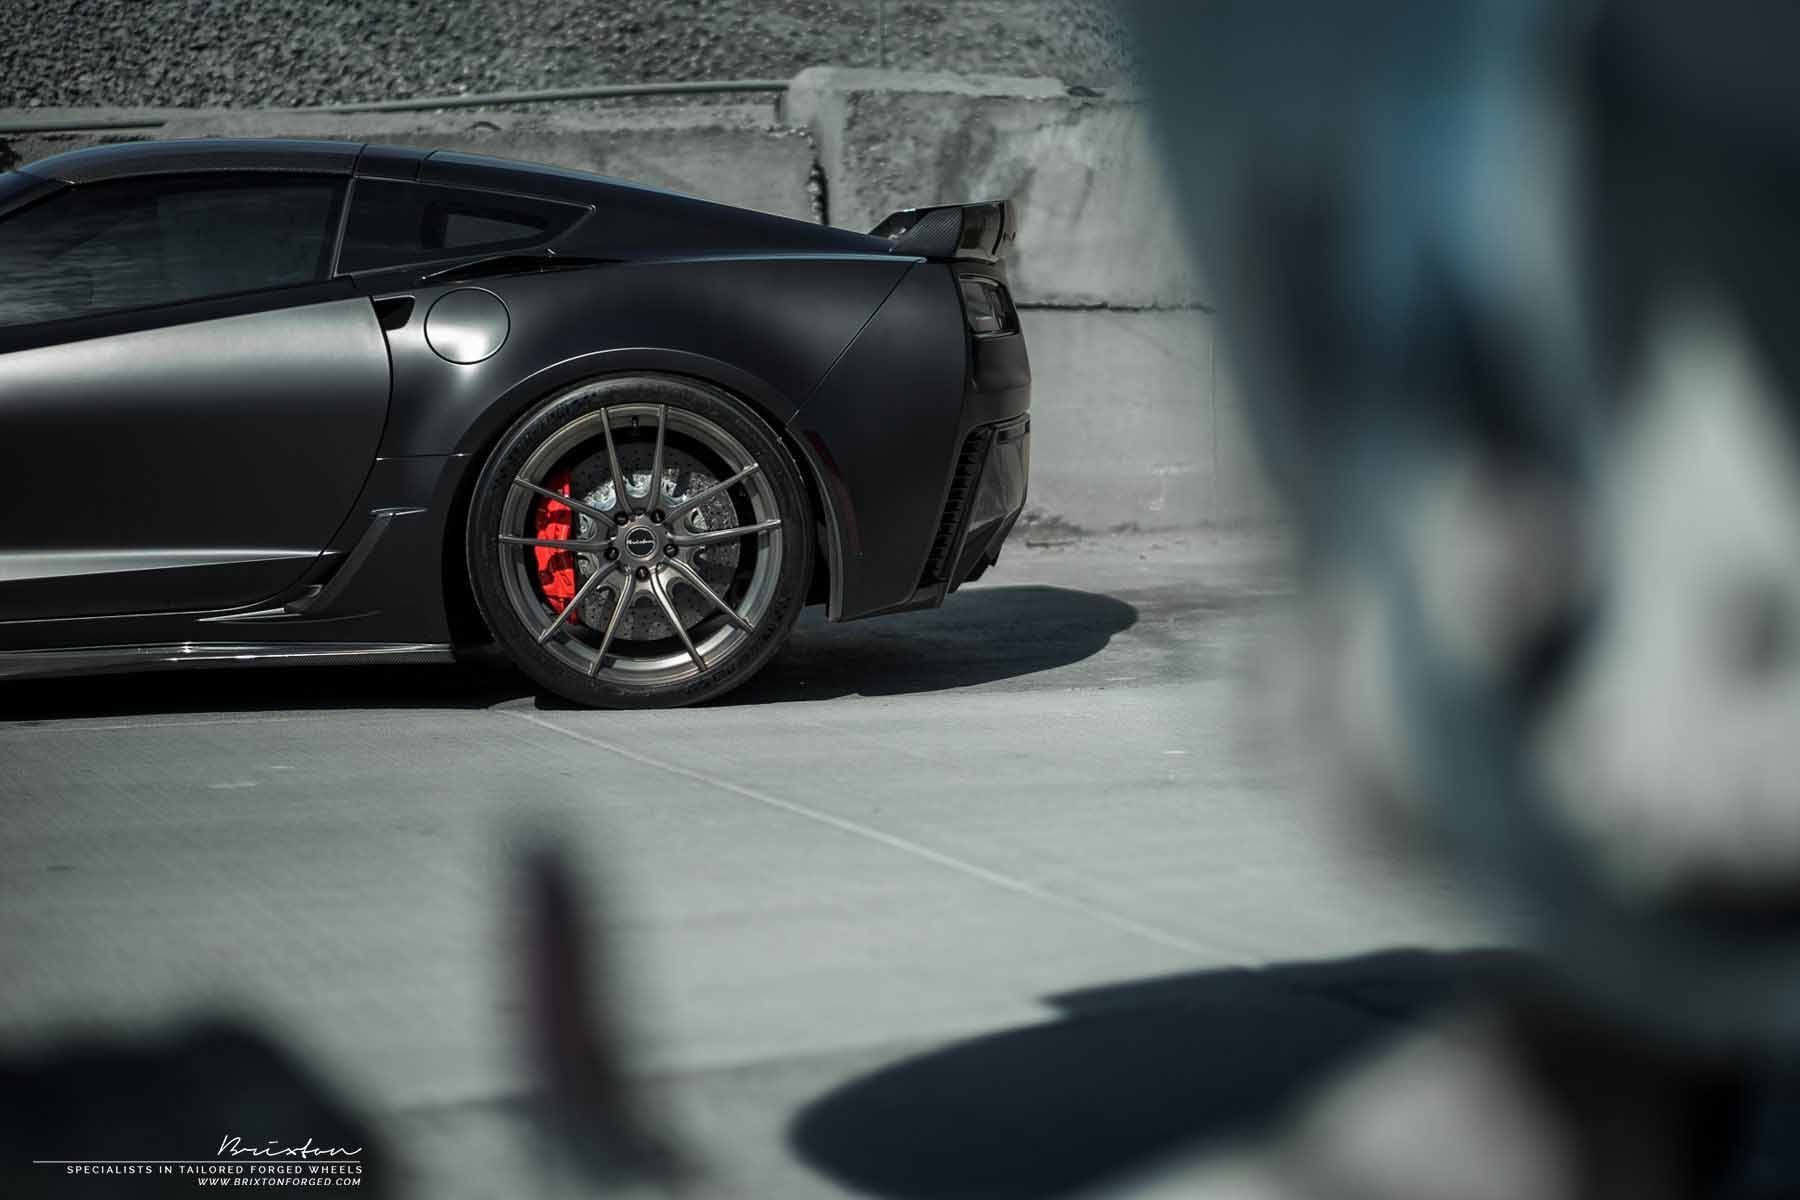 images-products-1-2282-232974570-black-corvette-c7-z06-forged-wheels-brixton-forged-m53-ultrasport-1-piece-brushed-smoke-black-ma.jpg